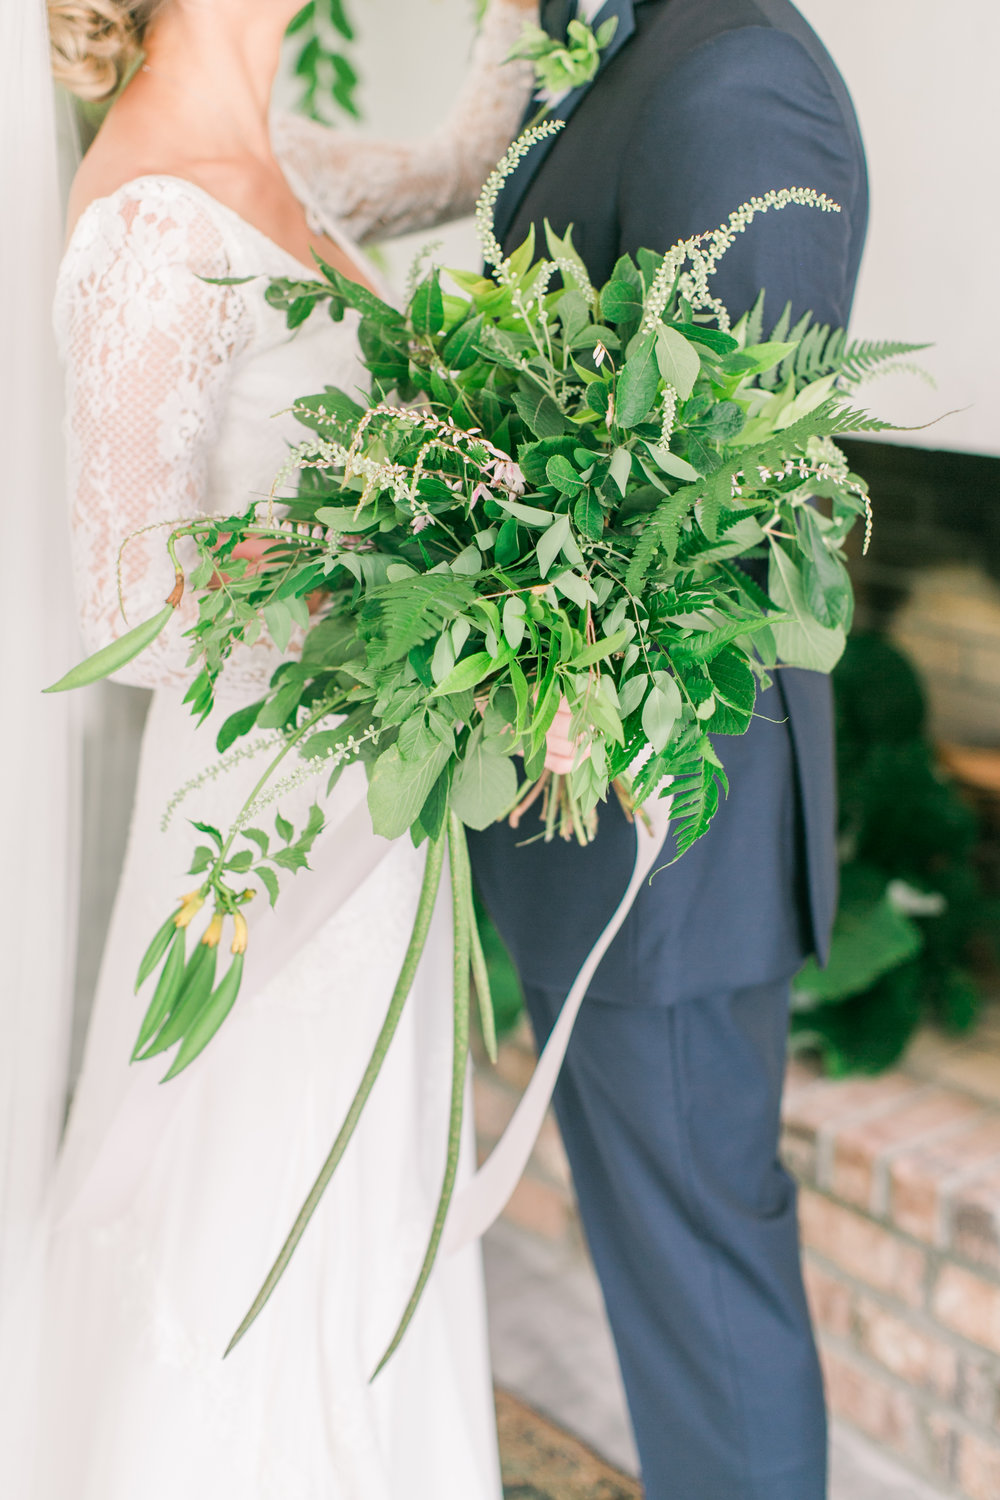 The grounds and garden were amazingly beautiful filled with native foliage. We were able to gather cuttings to make this stunning foraged bouquet.